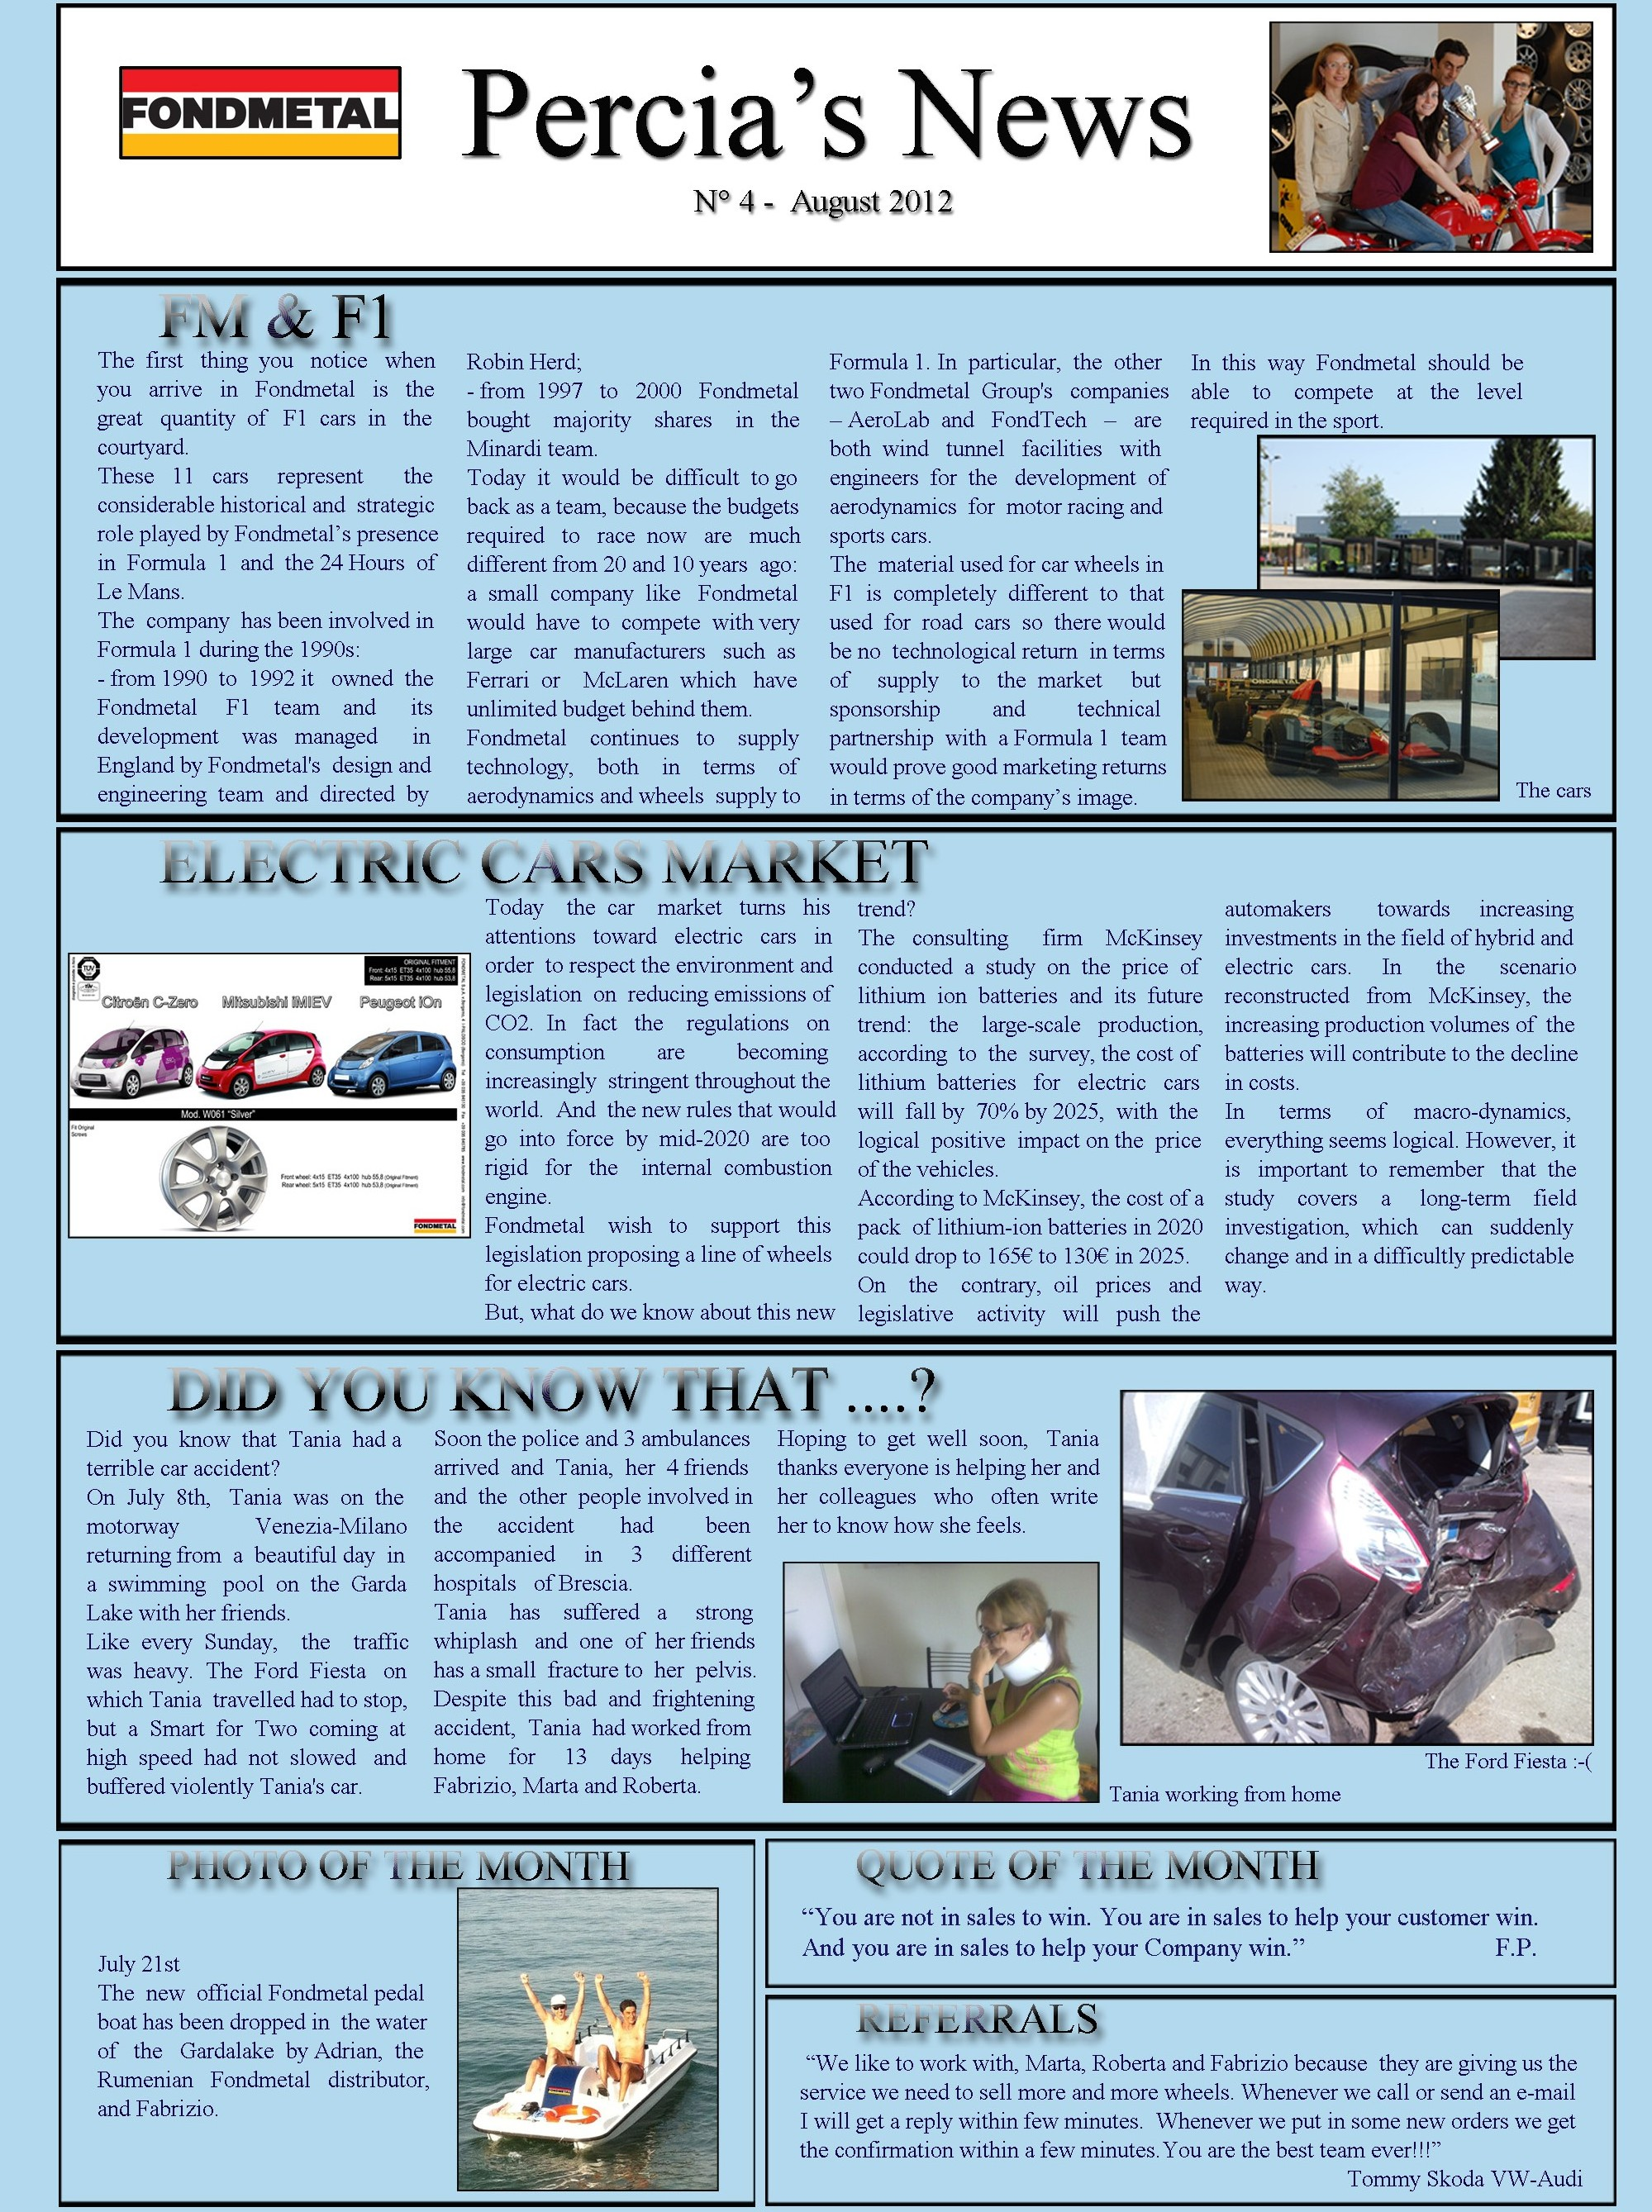 PERCIA'S NEWS AUGUST 2012